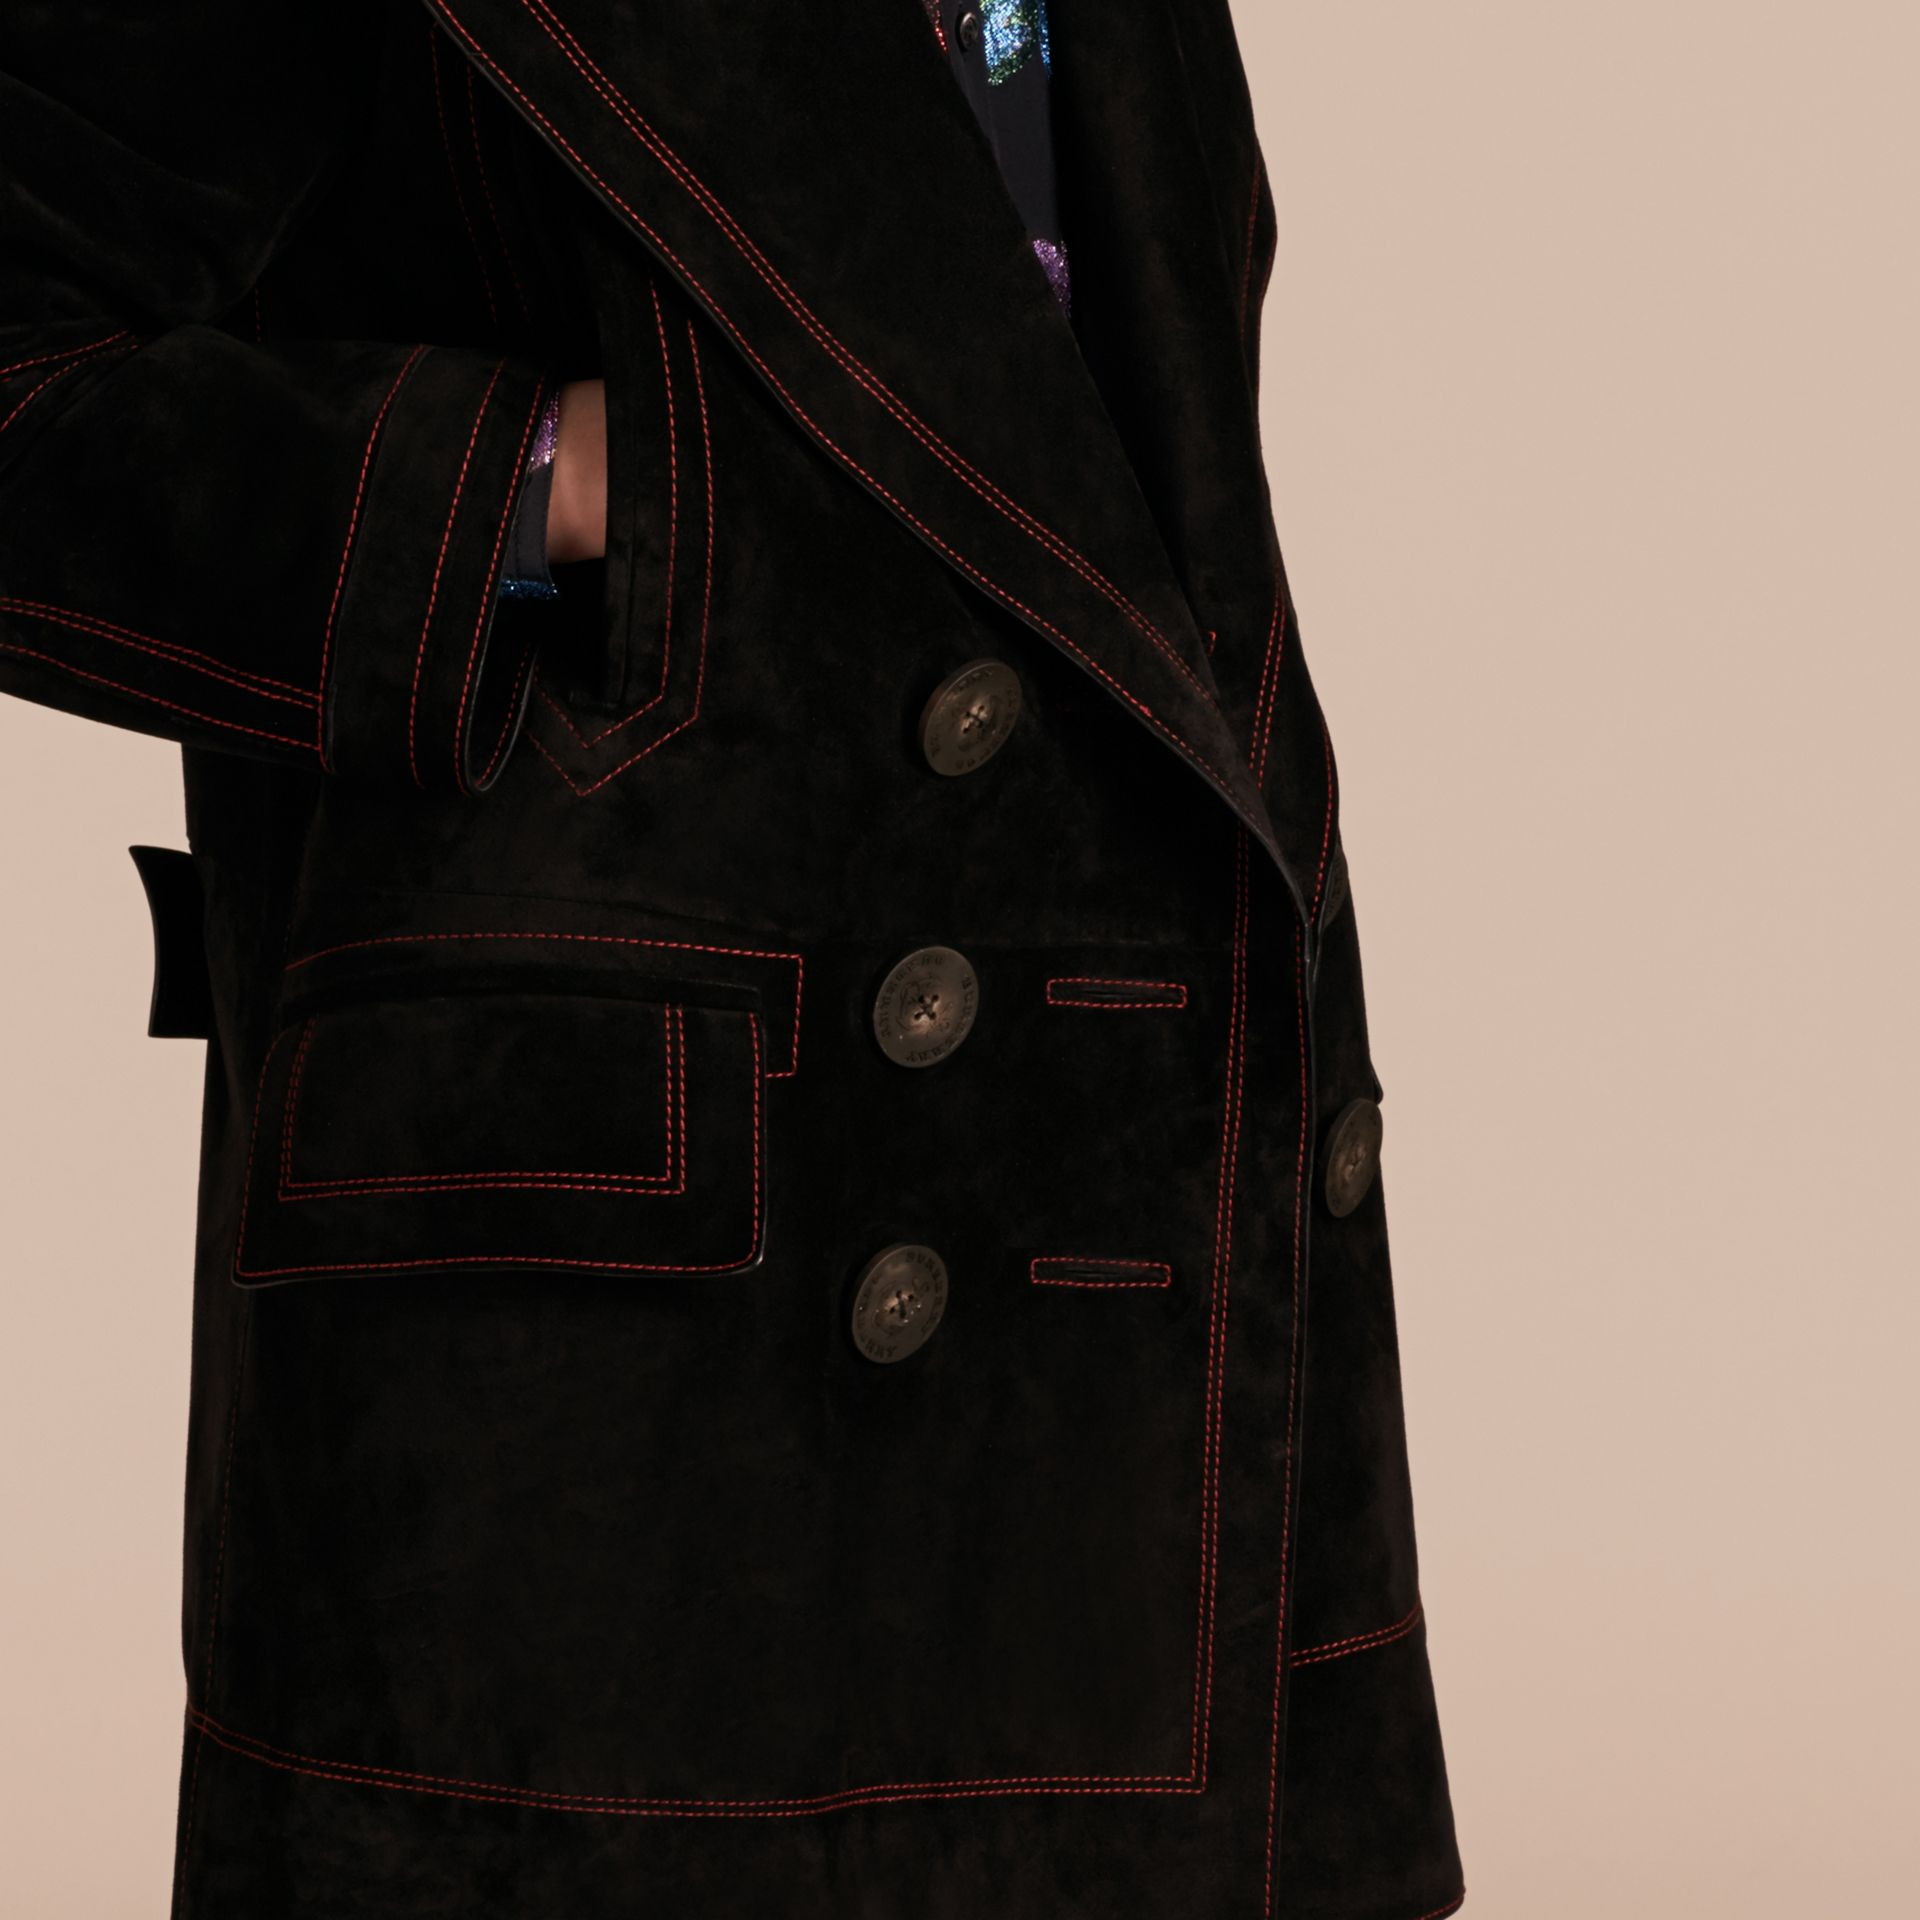 Black Suede Pea Coat with Shearling Topcollar - gallery image 6